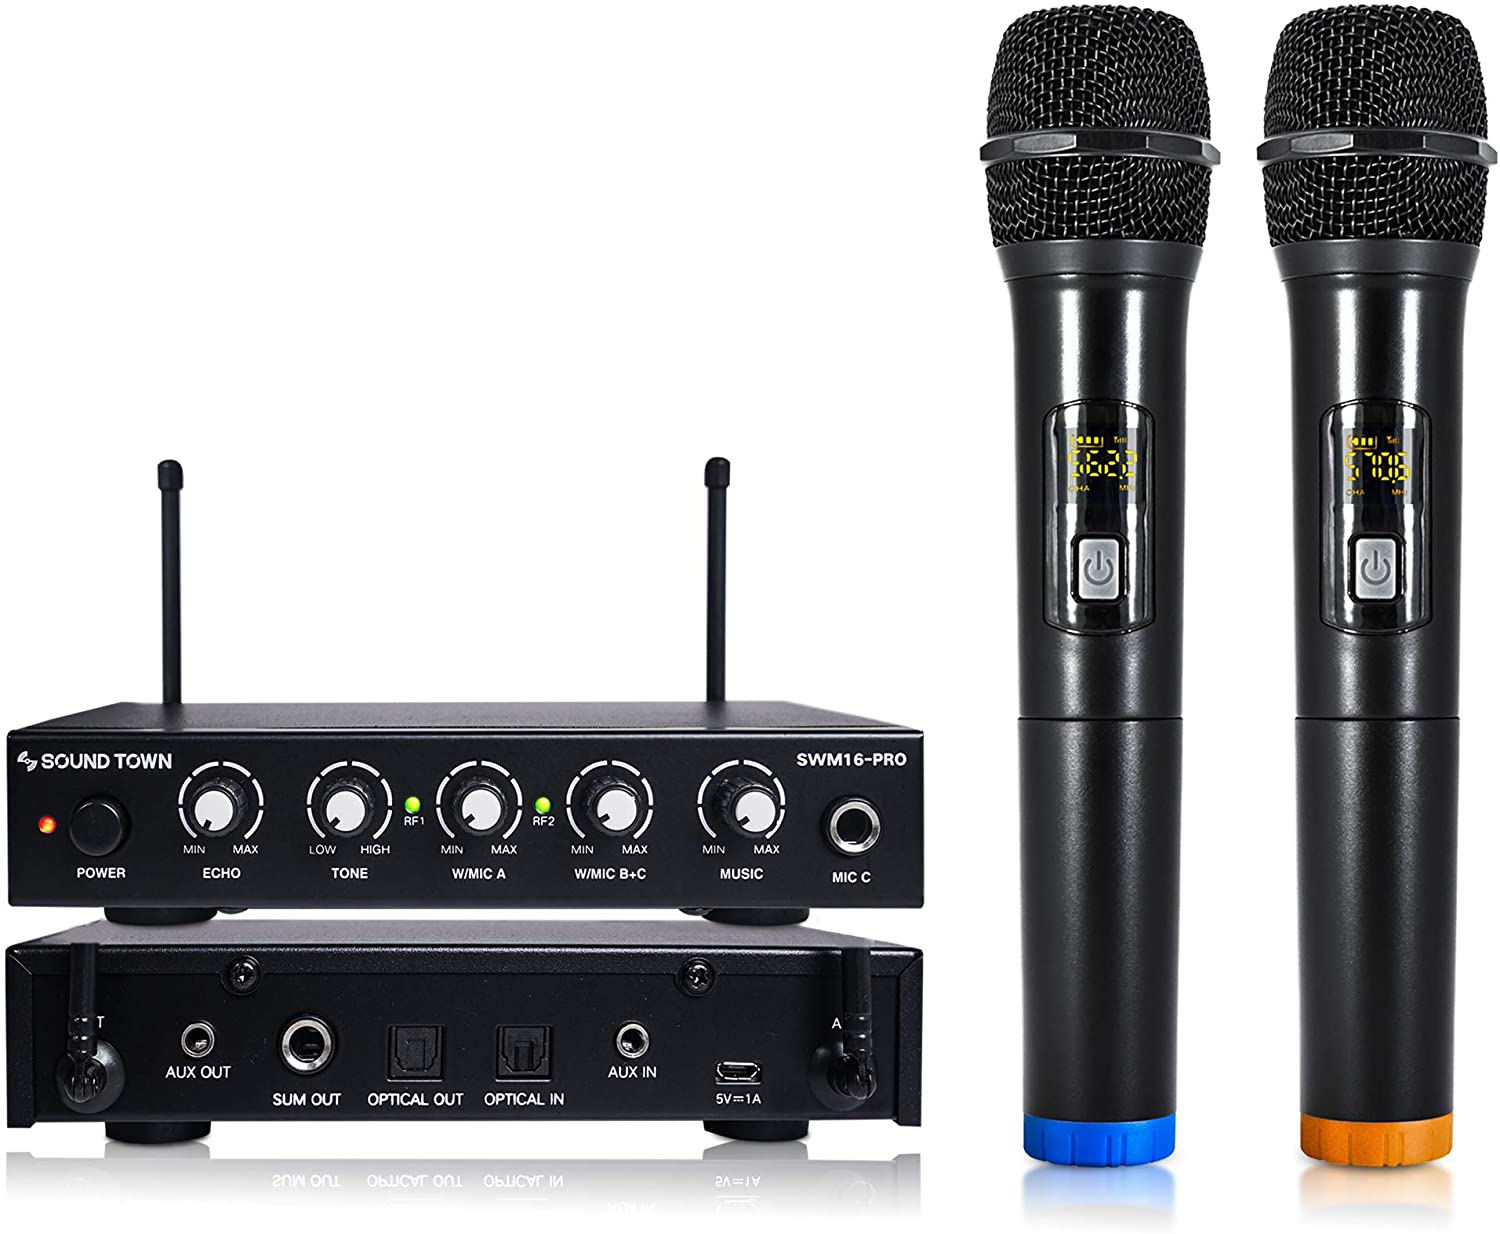 Sound Town 16 Channels Wireless Microphone Karaoke Mixer System with Optical (Toslink), AUX and 2 Handheld Microphones - Supports Smart TV, Home Theater, Sound Bar (SWM16-PRO)